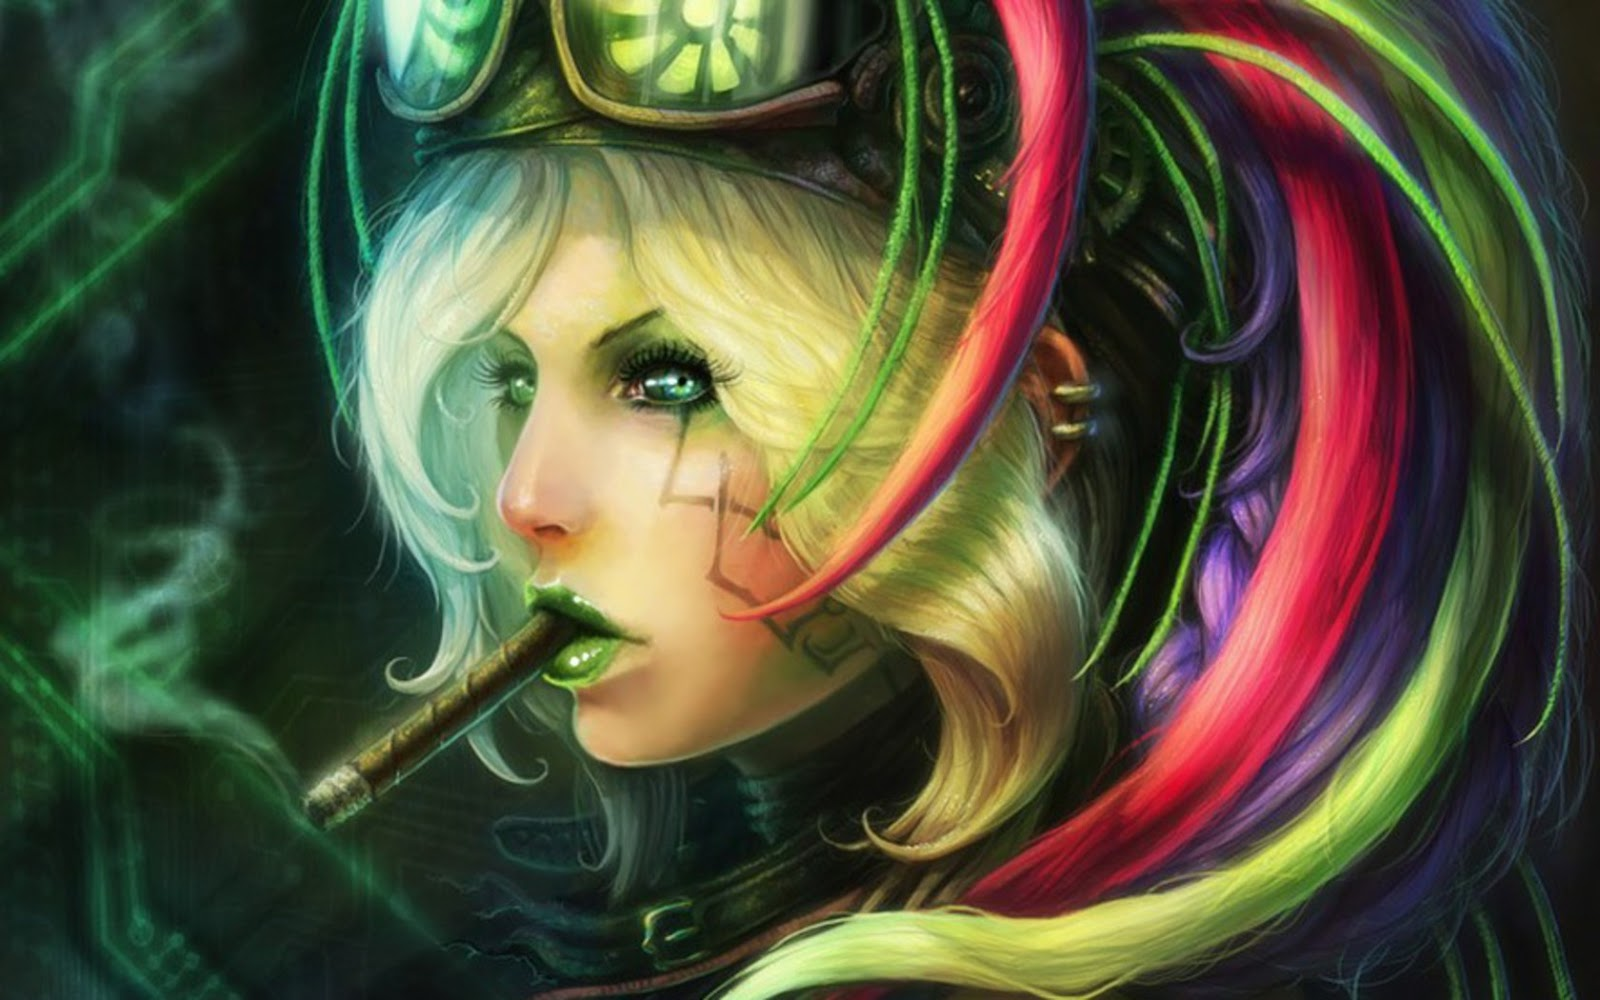 Cybernetic Girls Hd Wallpaper Best Steampunk Wallpapers Hottest Pictures Amp Wallpapers